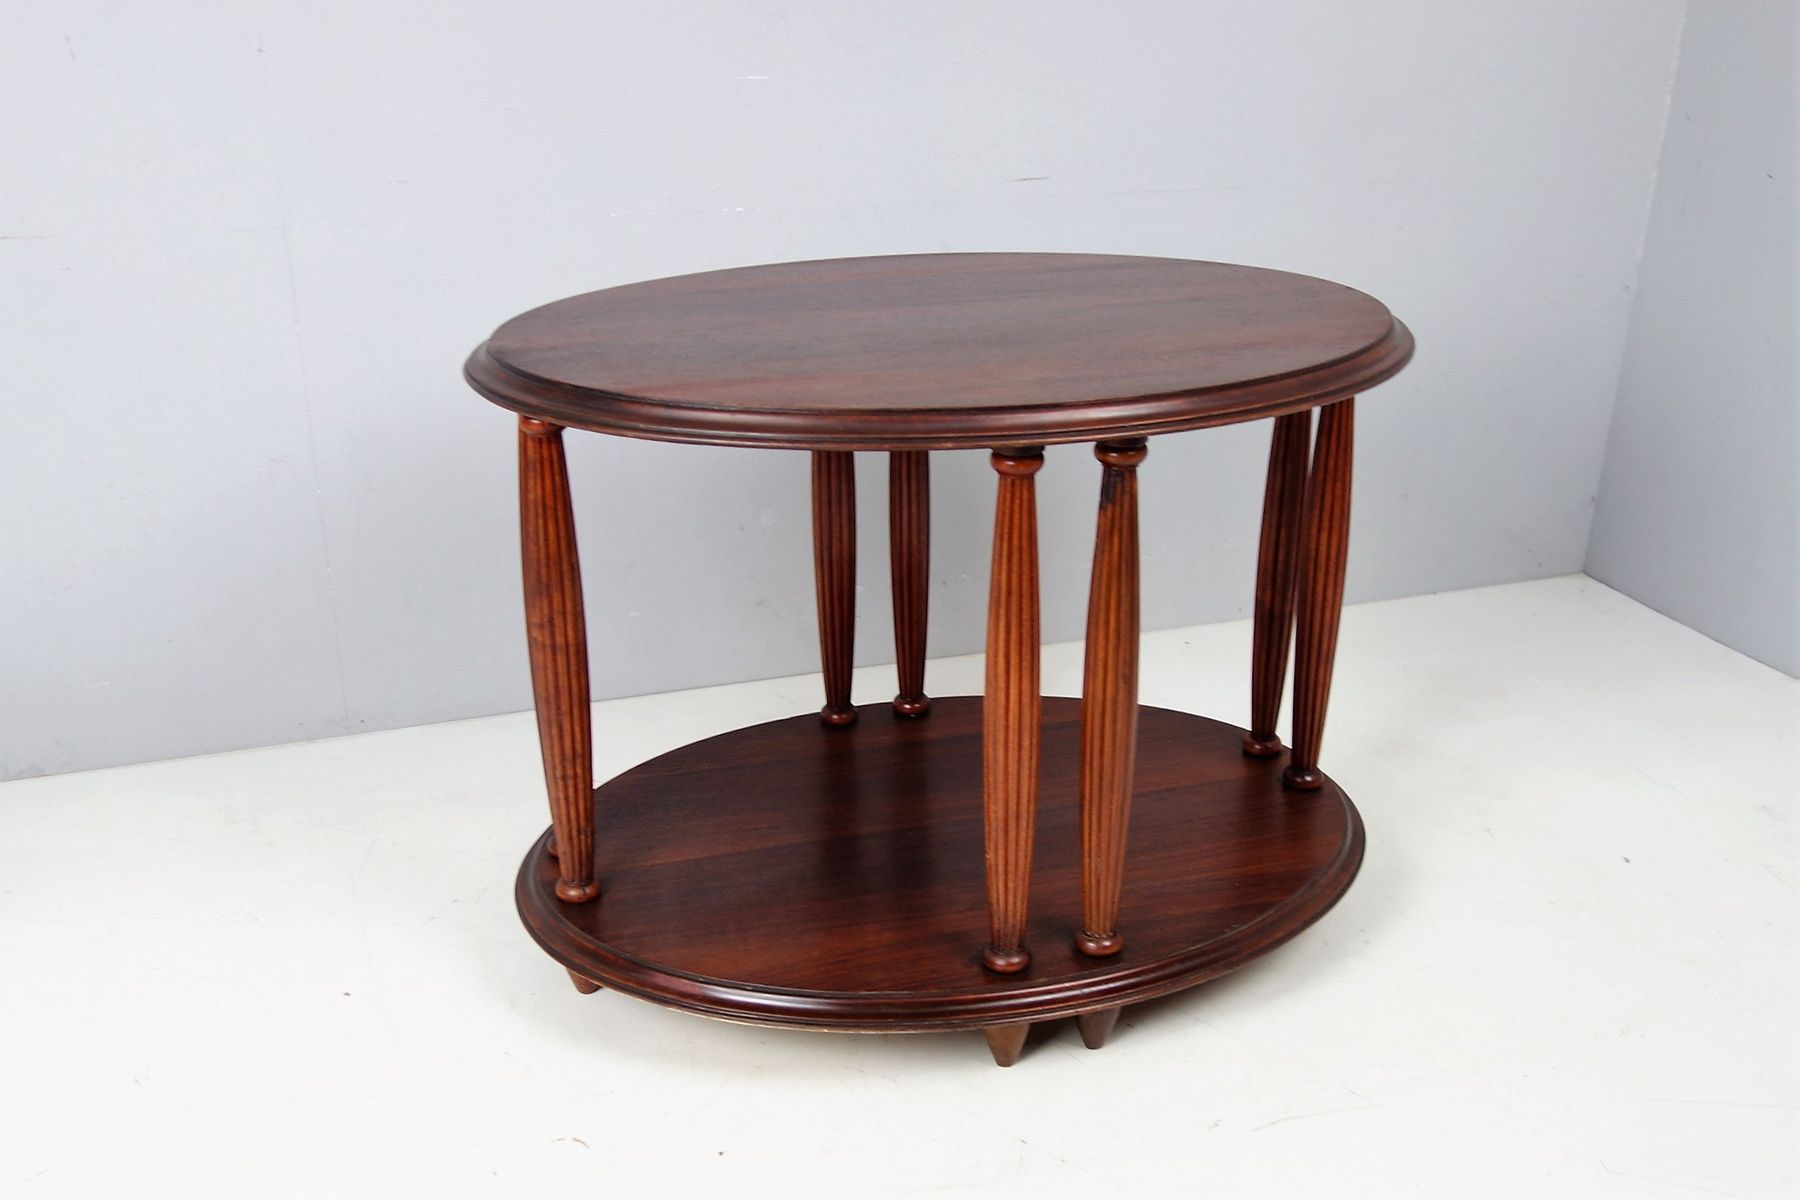 Art deco coffee table 1924 for sale at pamono for Art deco coffee table